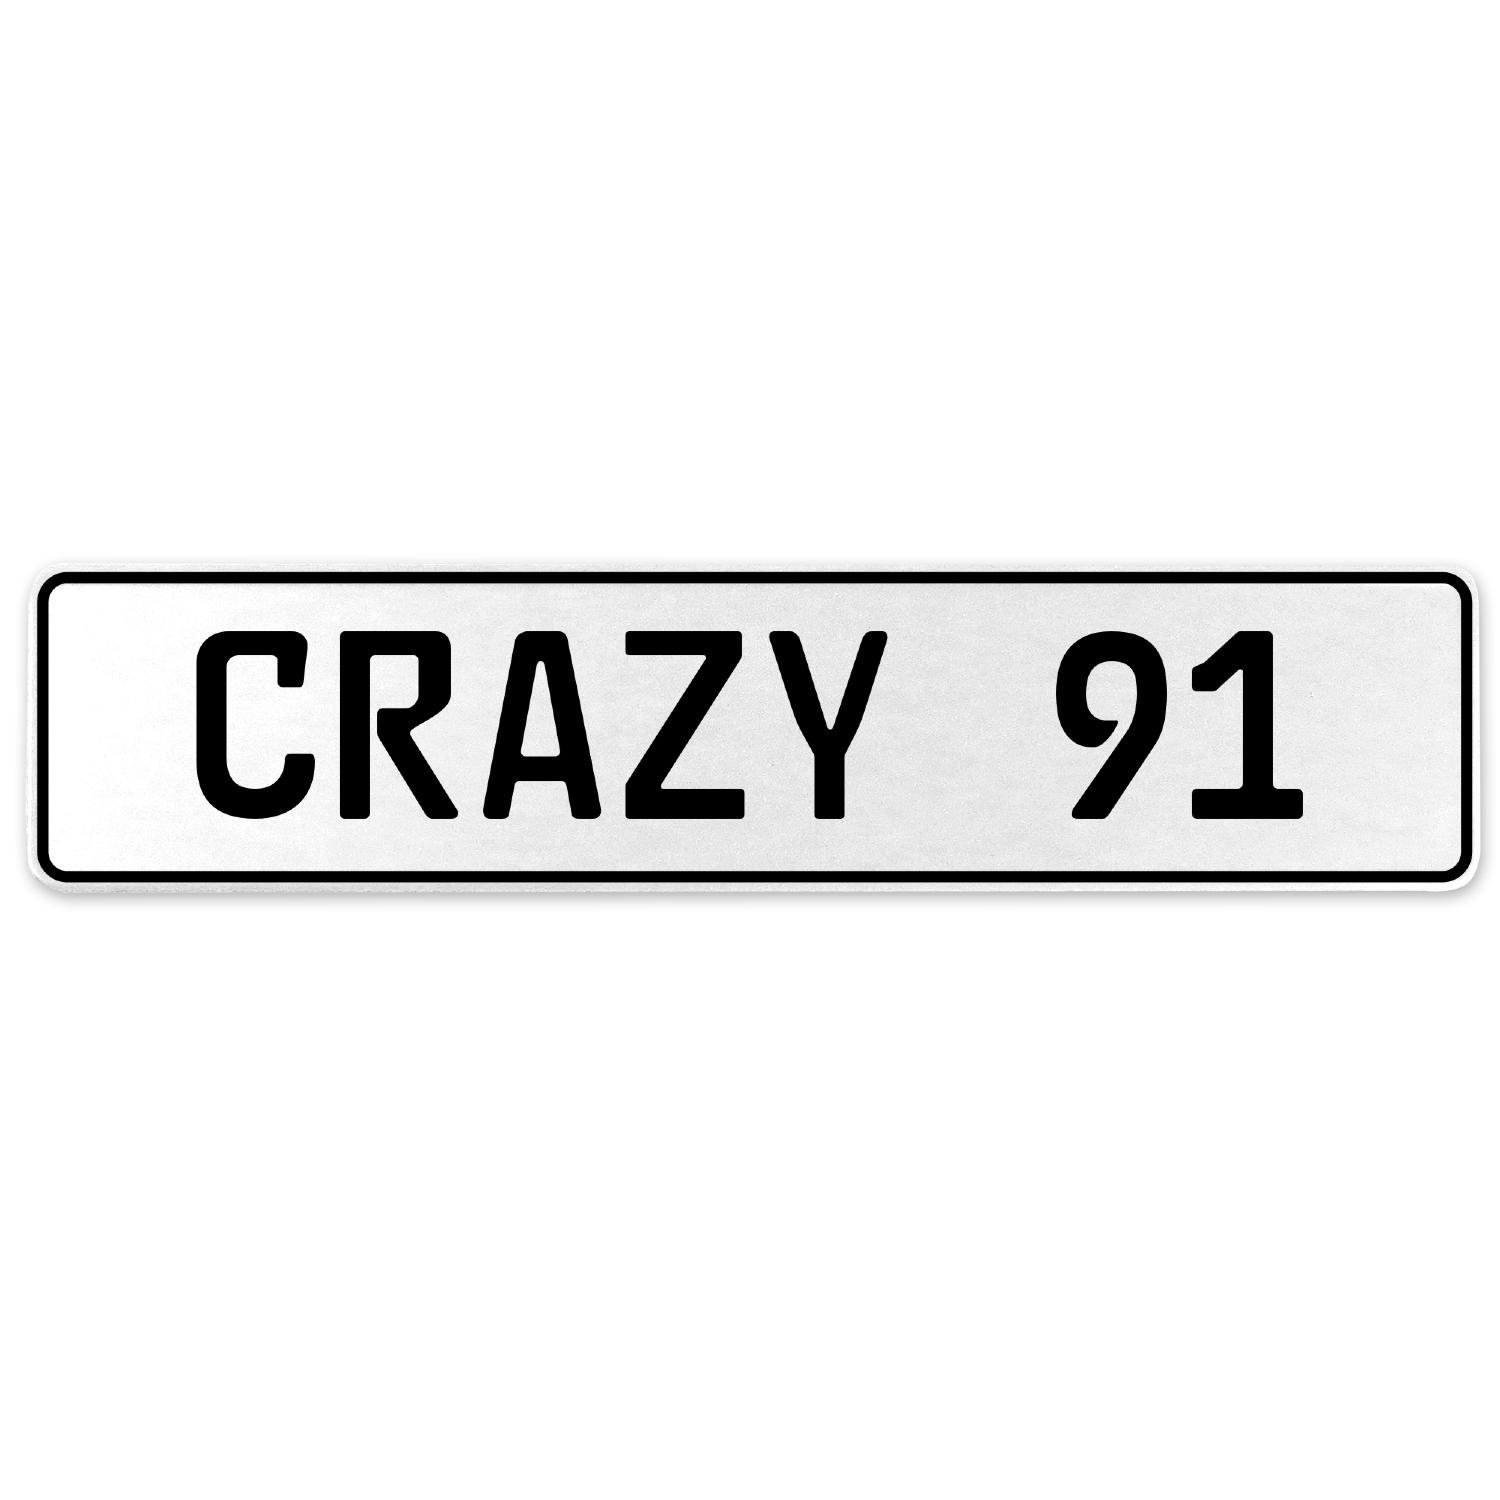 Vintage Parts 555678 Crazy 91 White Stamped Aluminum European License Plate